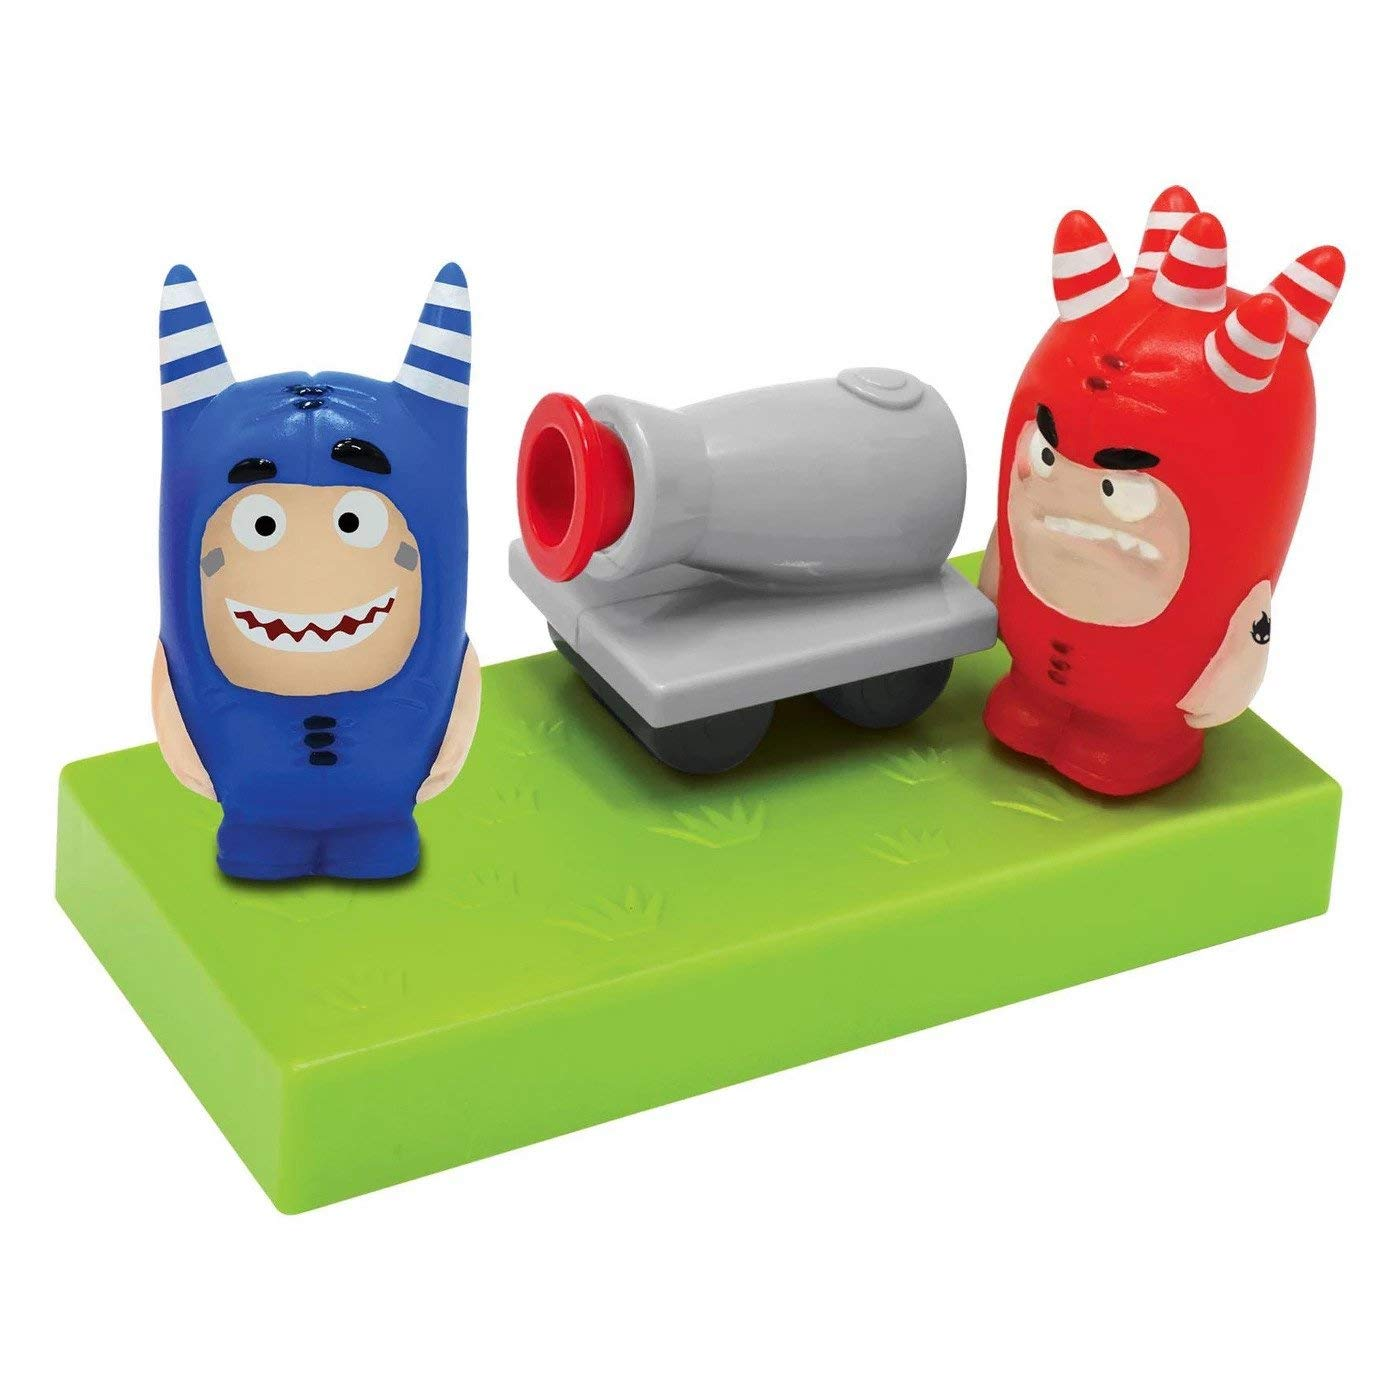 Fuses Surprise Fuse and Pogo Fun playset ODDBODS Funny Maker